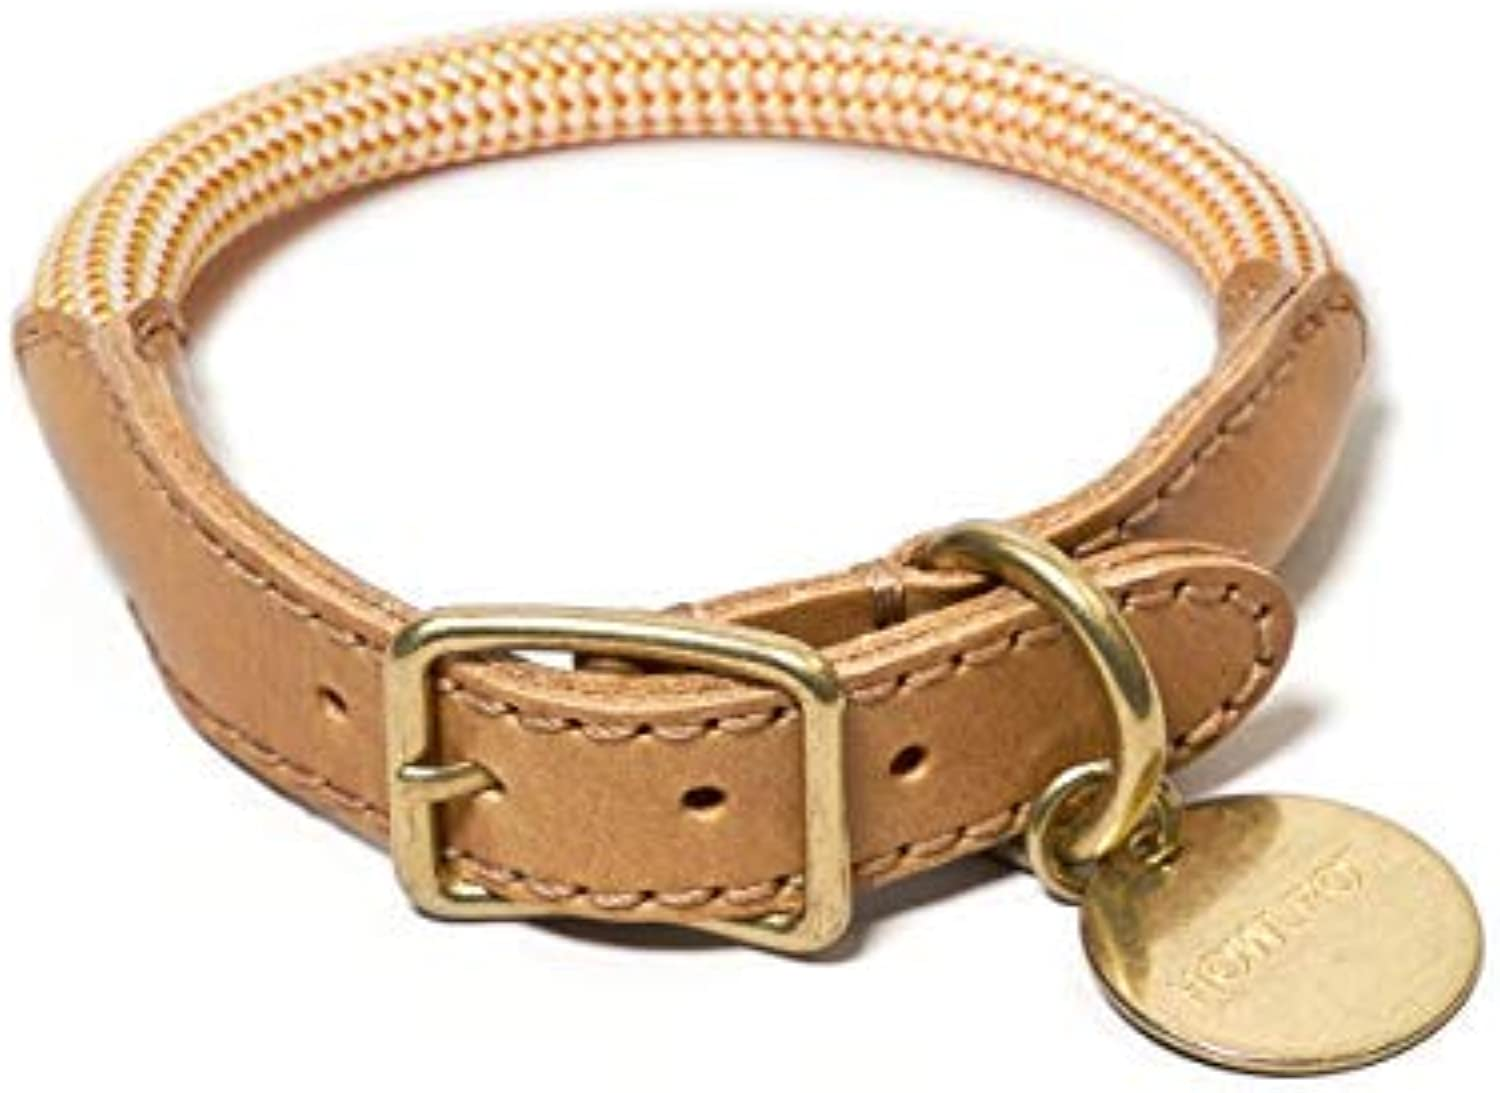 HOWLPOT. We are Tight Dog Collar Made with Genuine Buttero Leather & Mountain Climbing Rope